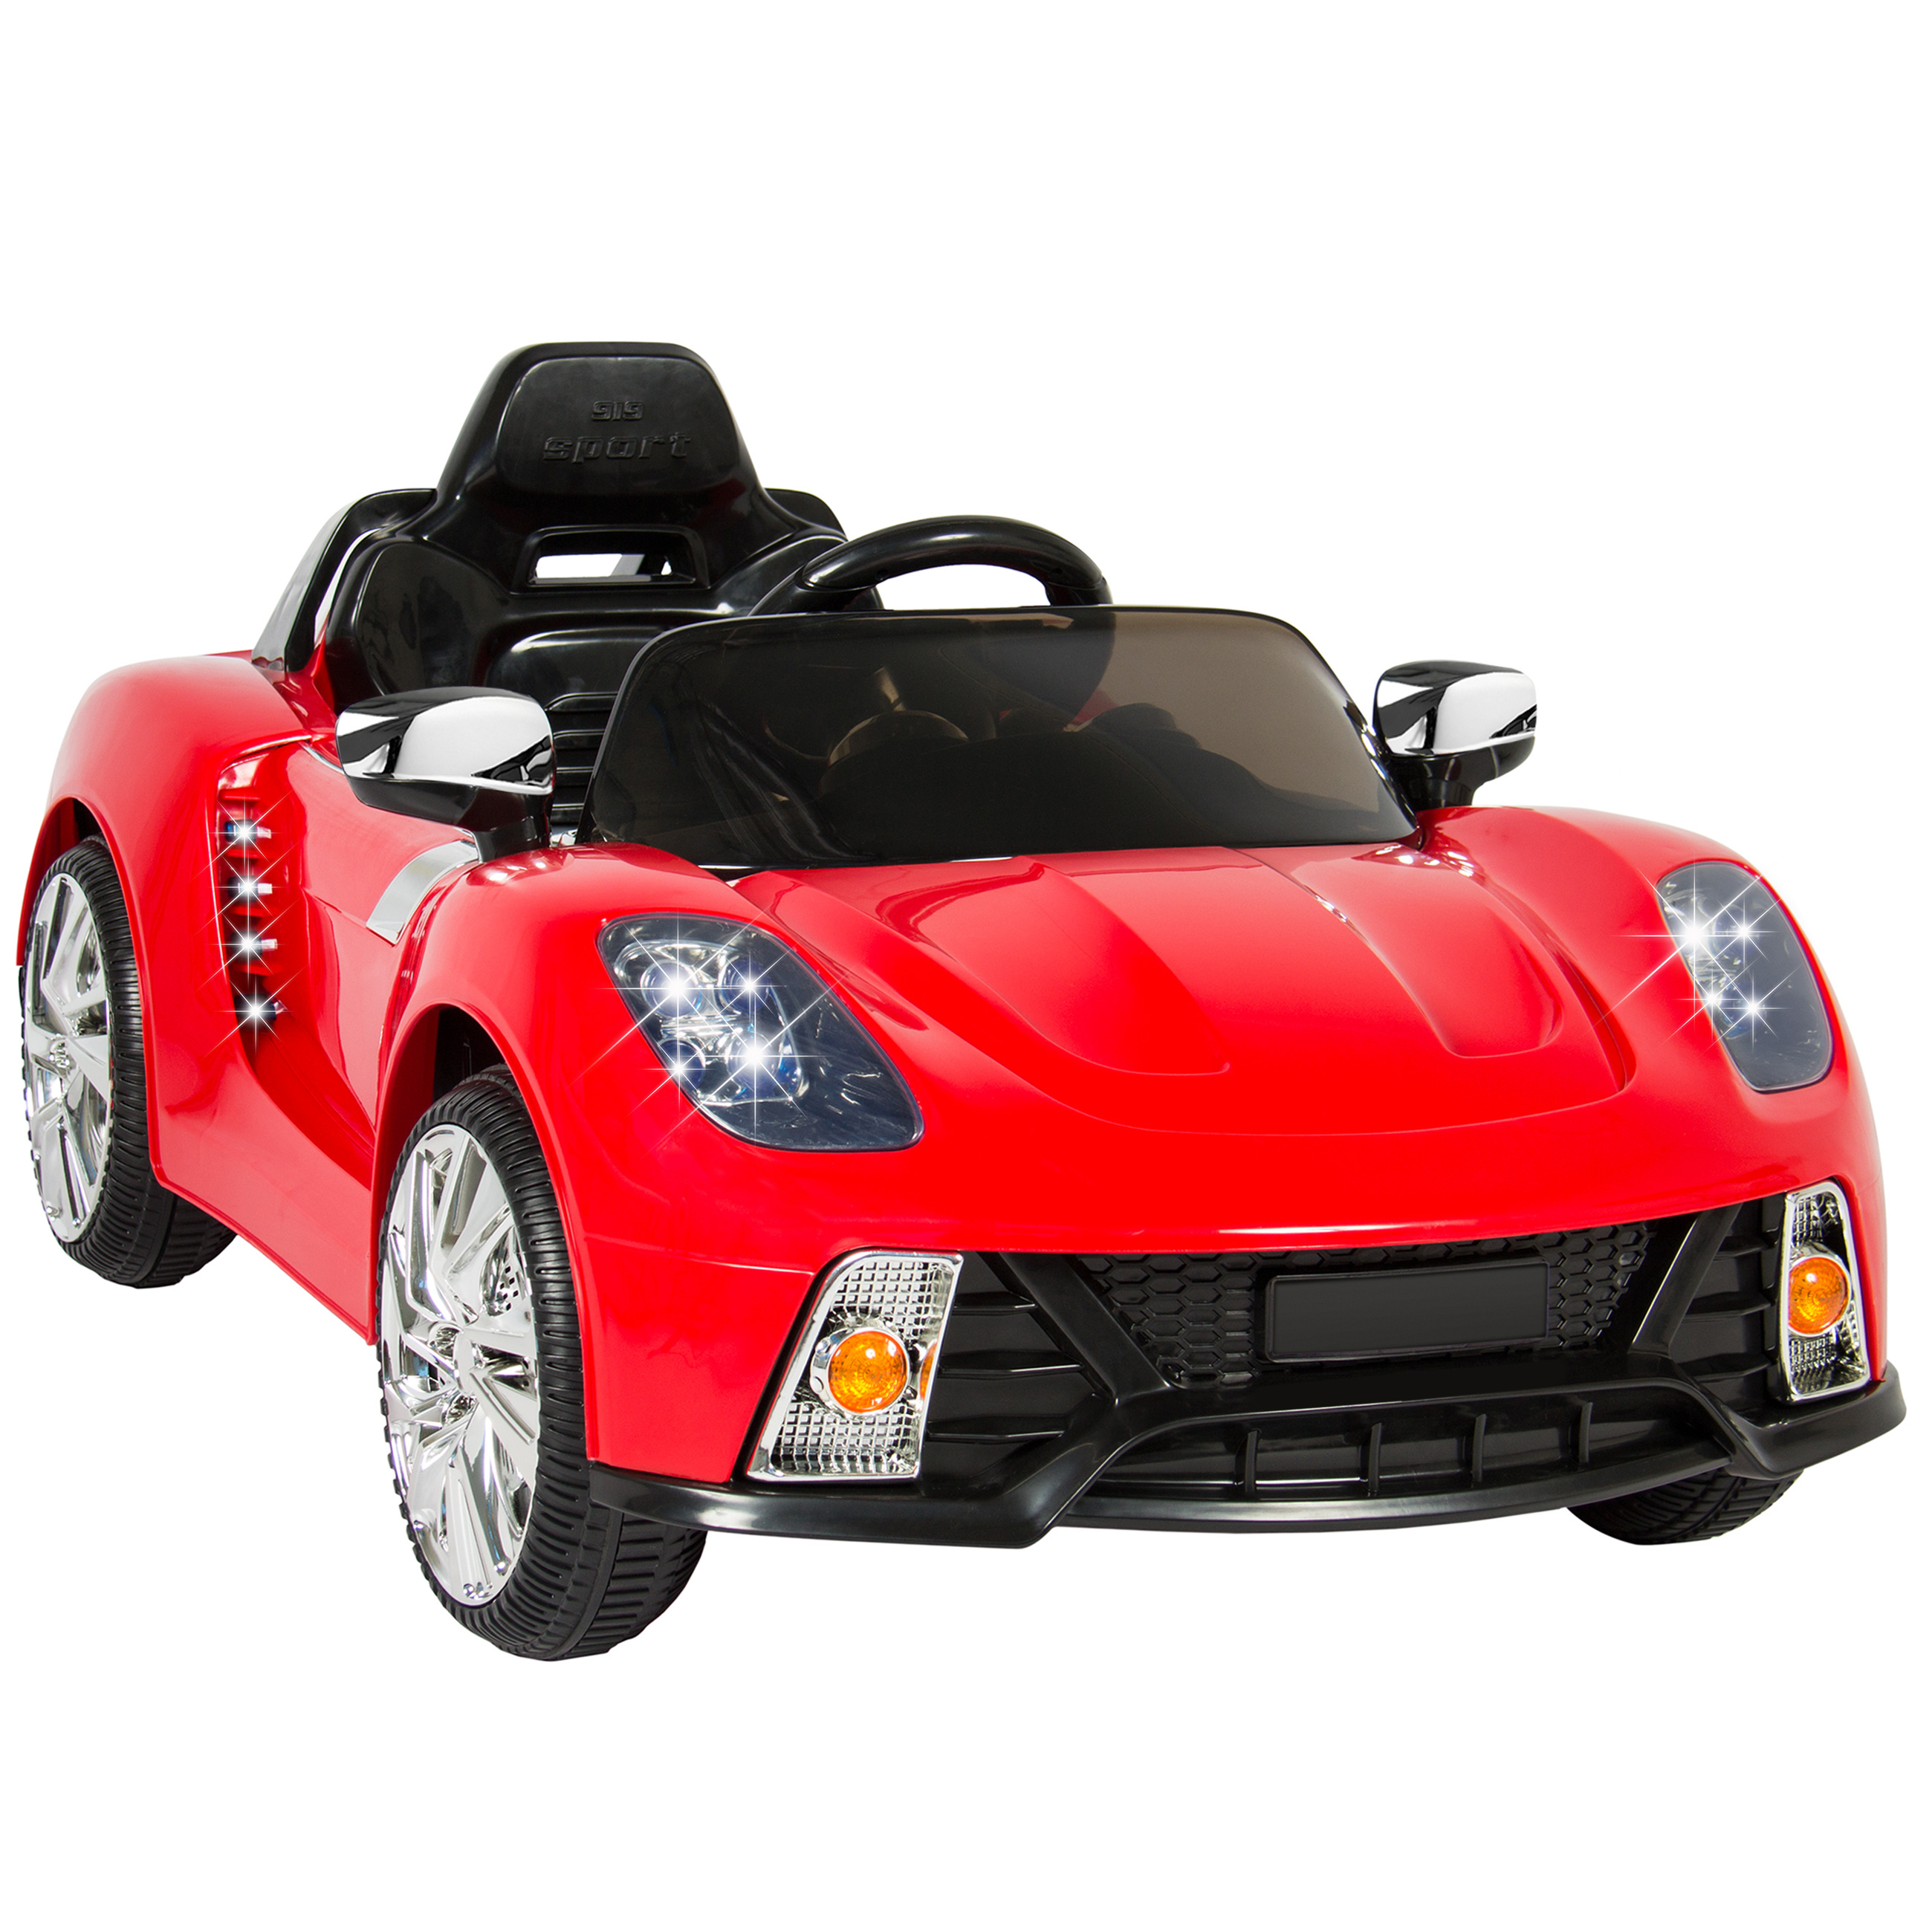 Best Choice Products 12V Kids Battery Powered Remote Control Electric RC Ride-On Car w/ LED Lights, MP3, AUX - Red